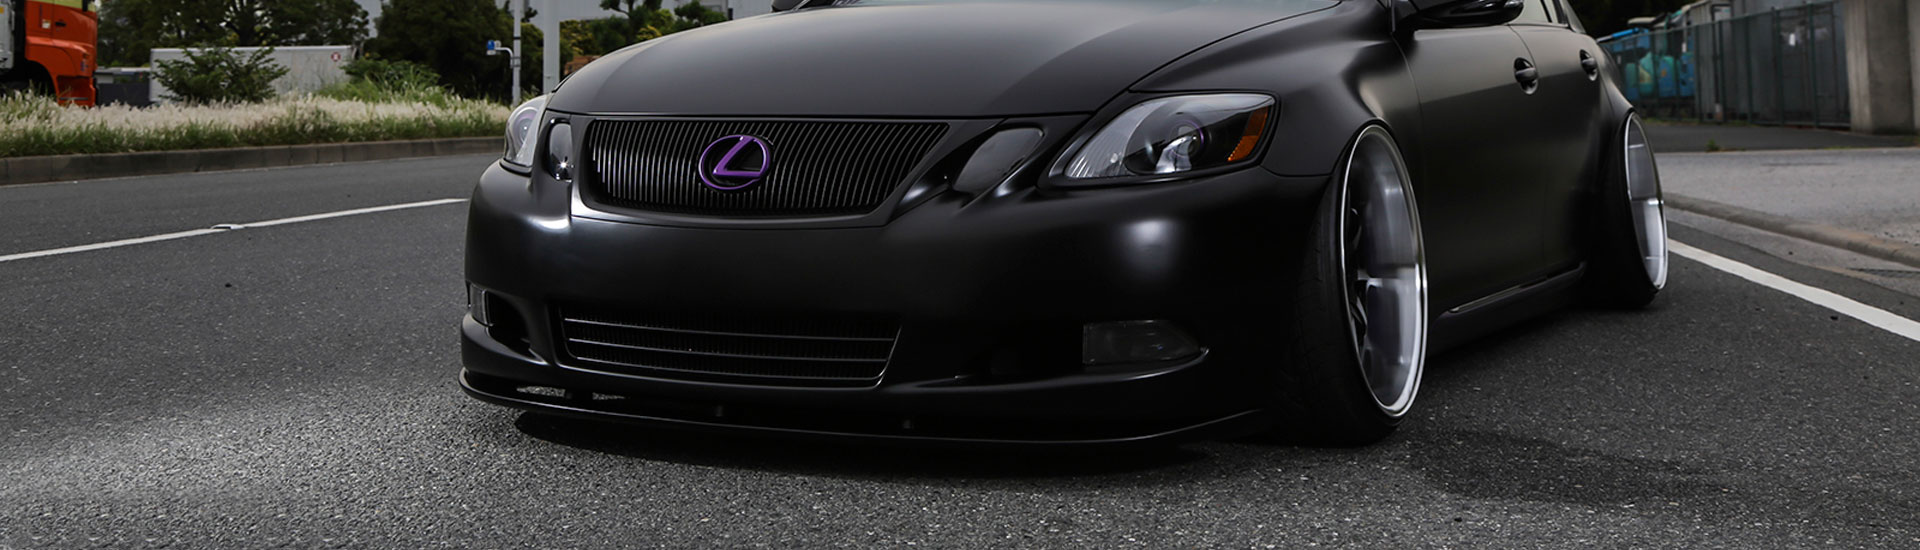 Lexus Headlight Tint Covers